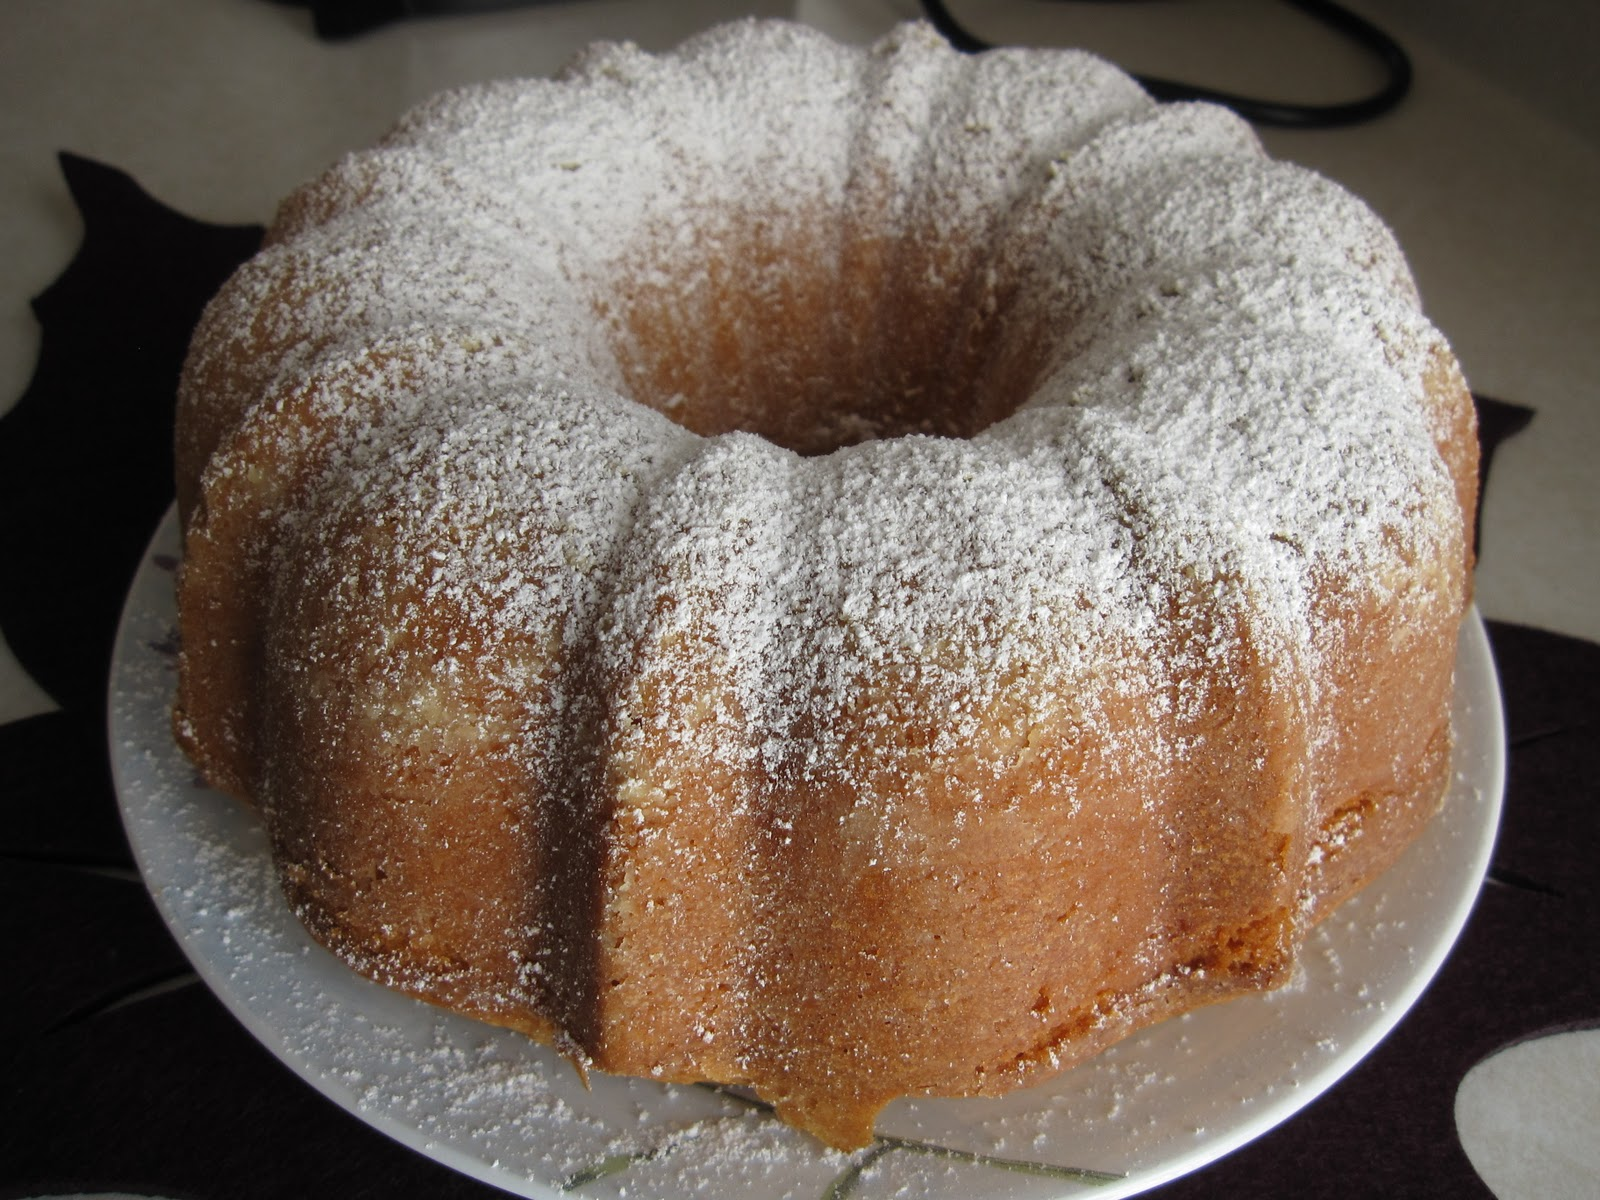 At the Pink of Perfection: Cream Cheese Pound Cake